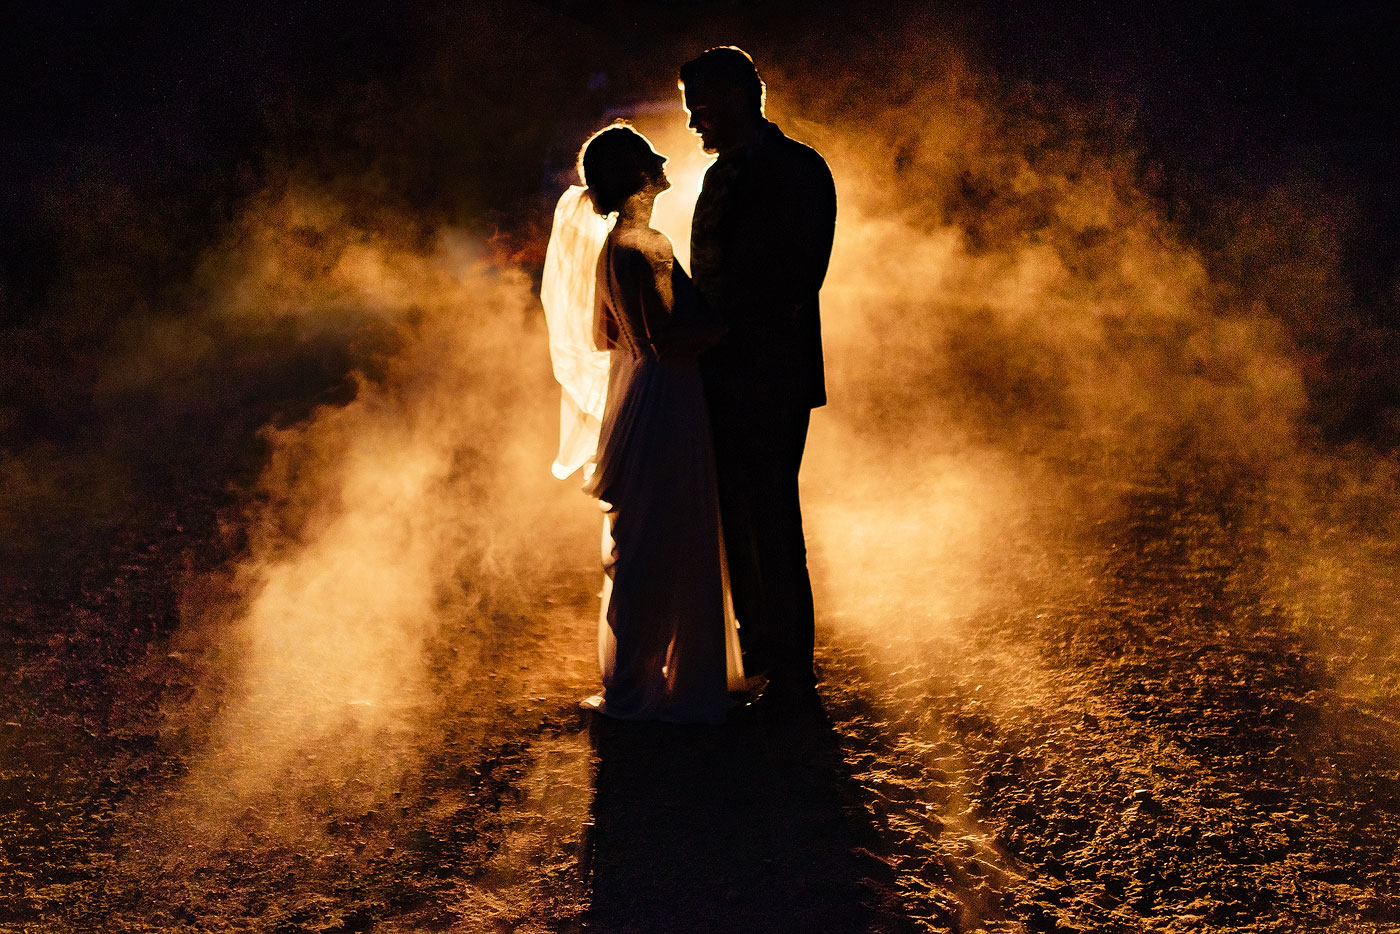 Creative Night Wedding Photo